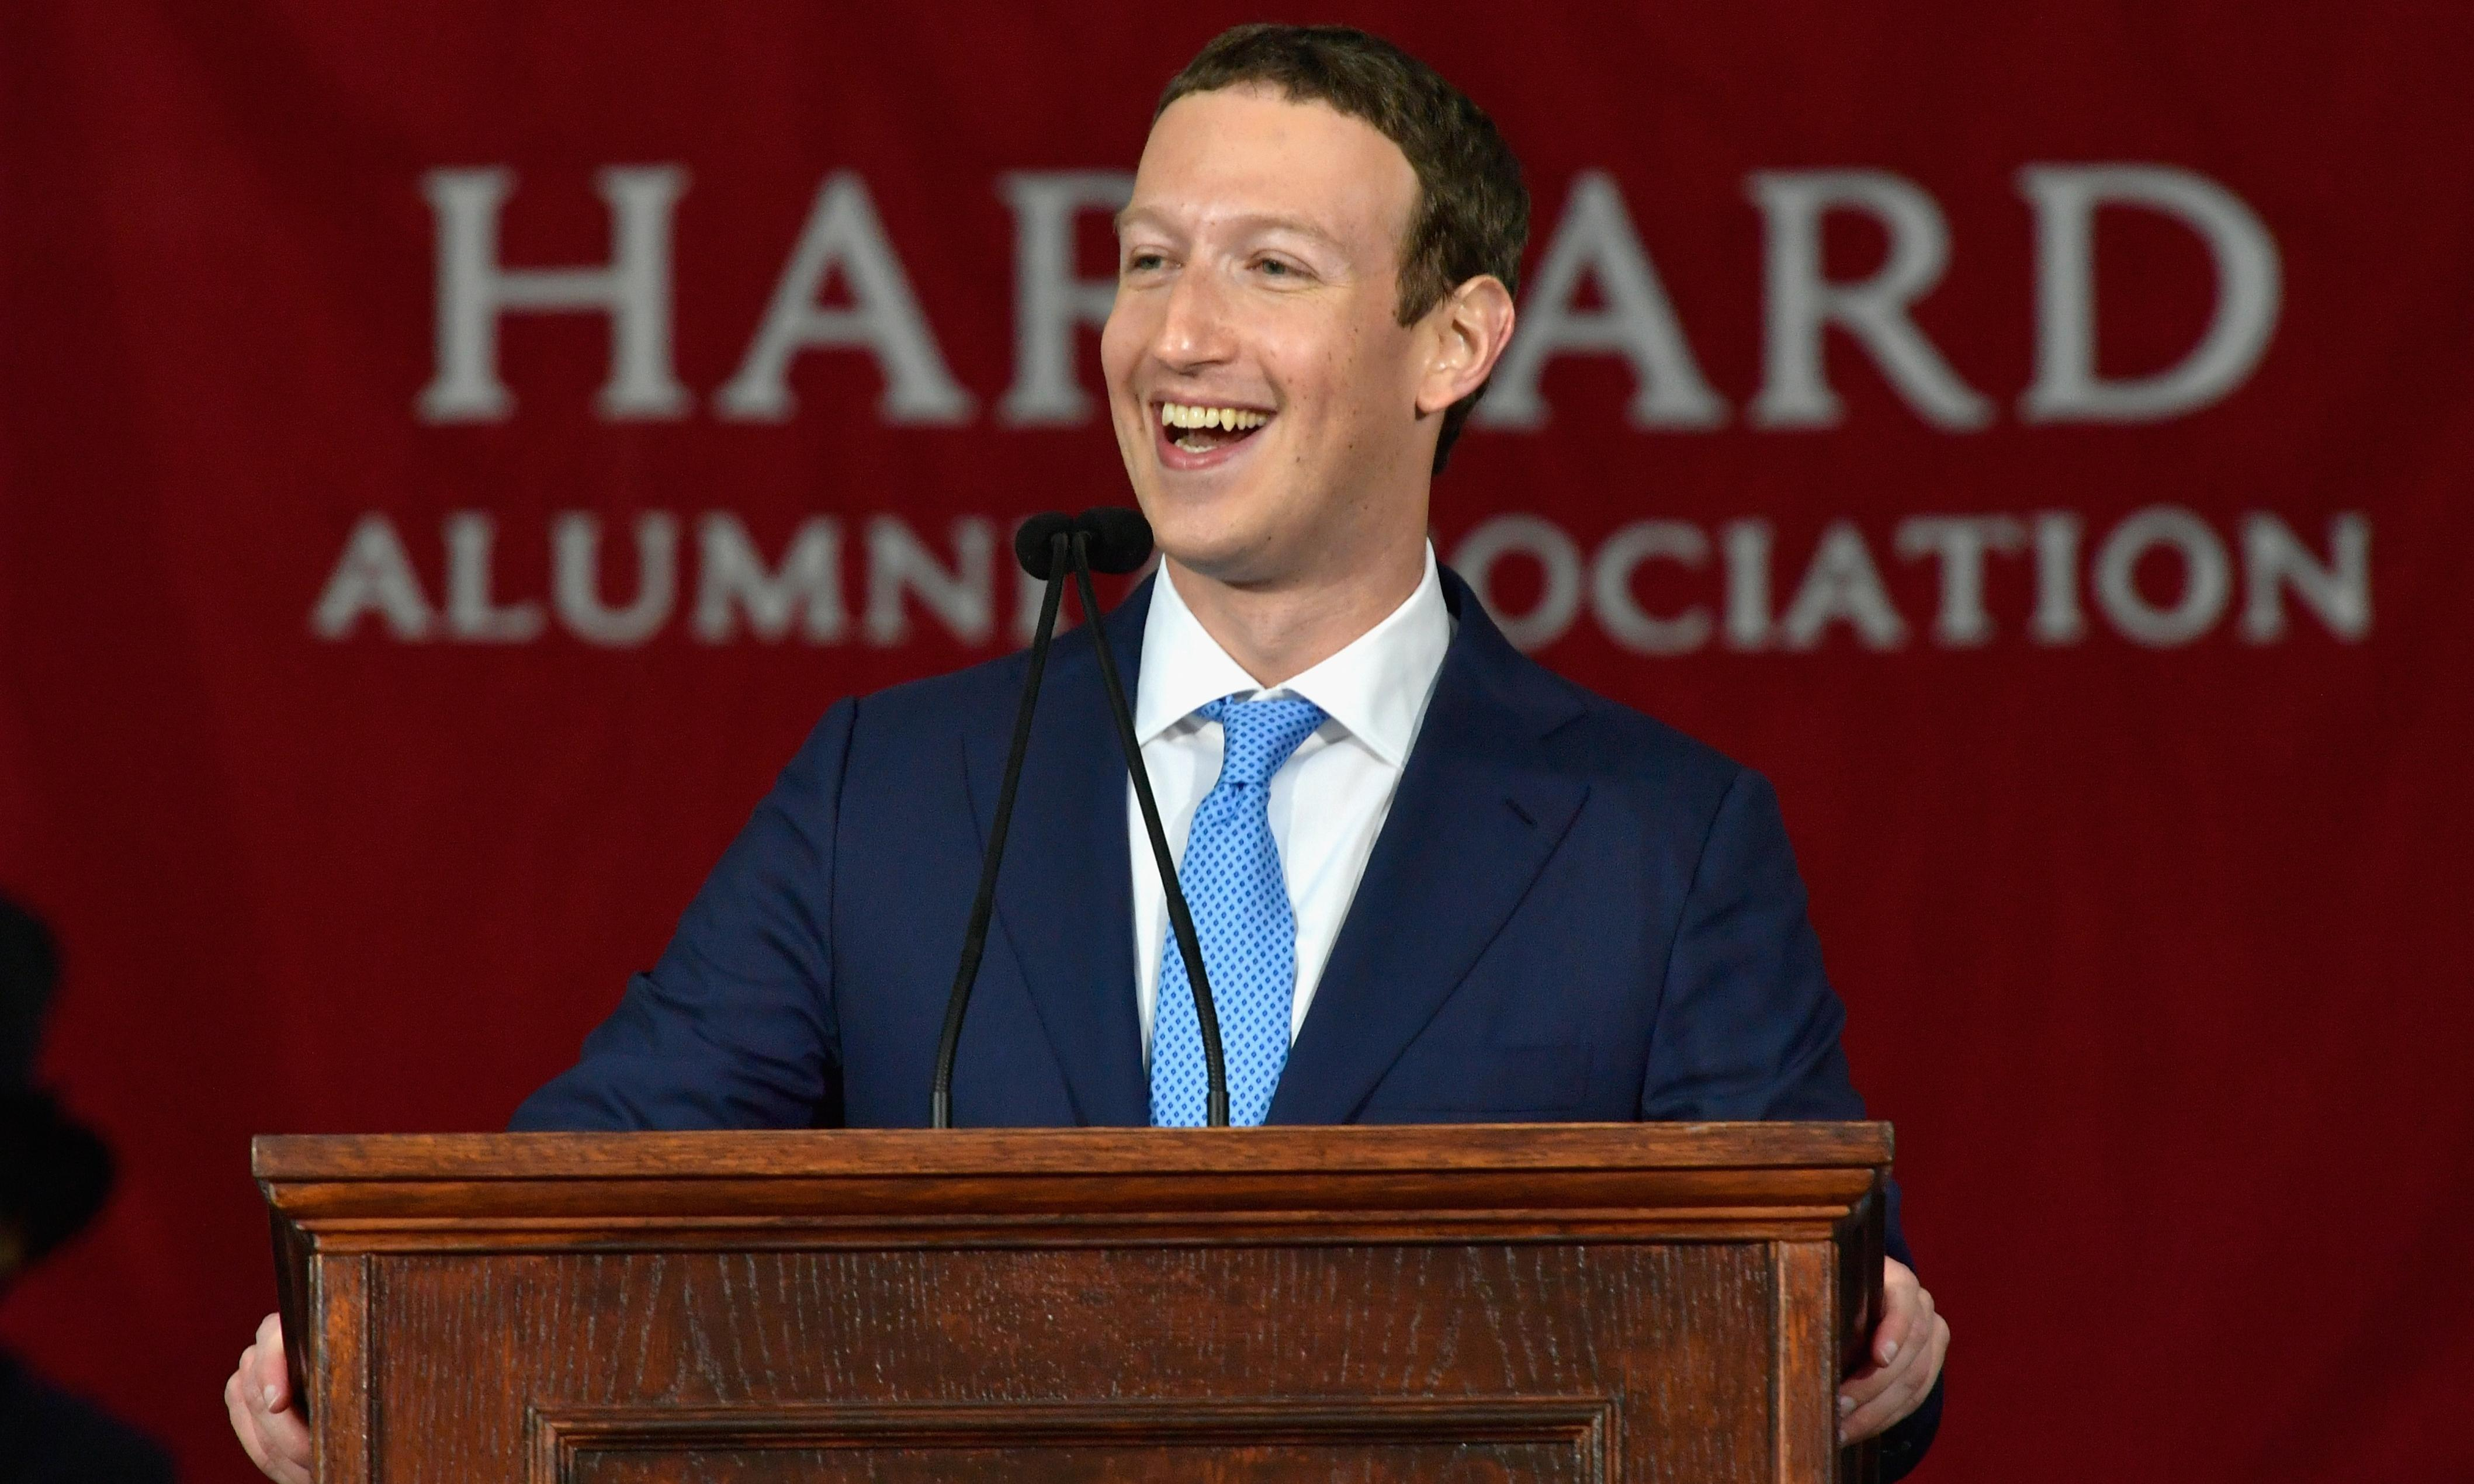 Facebook job offers 'shunned by top talent after data scandal'